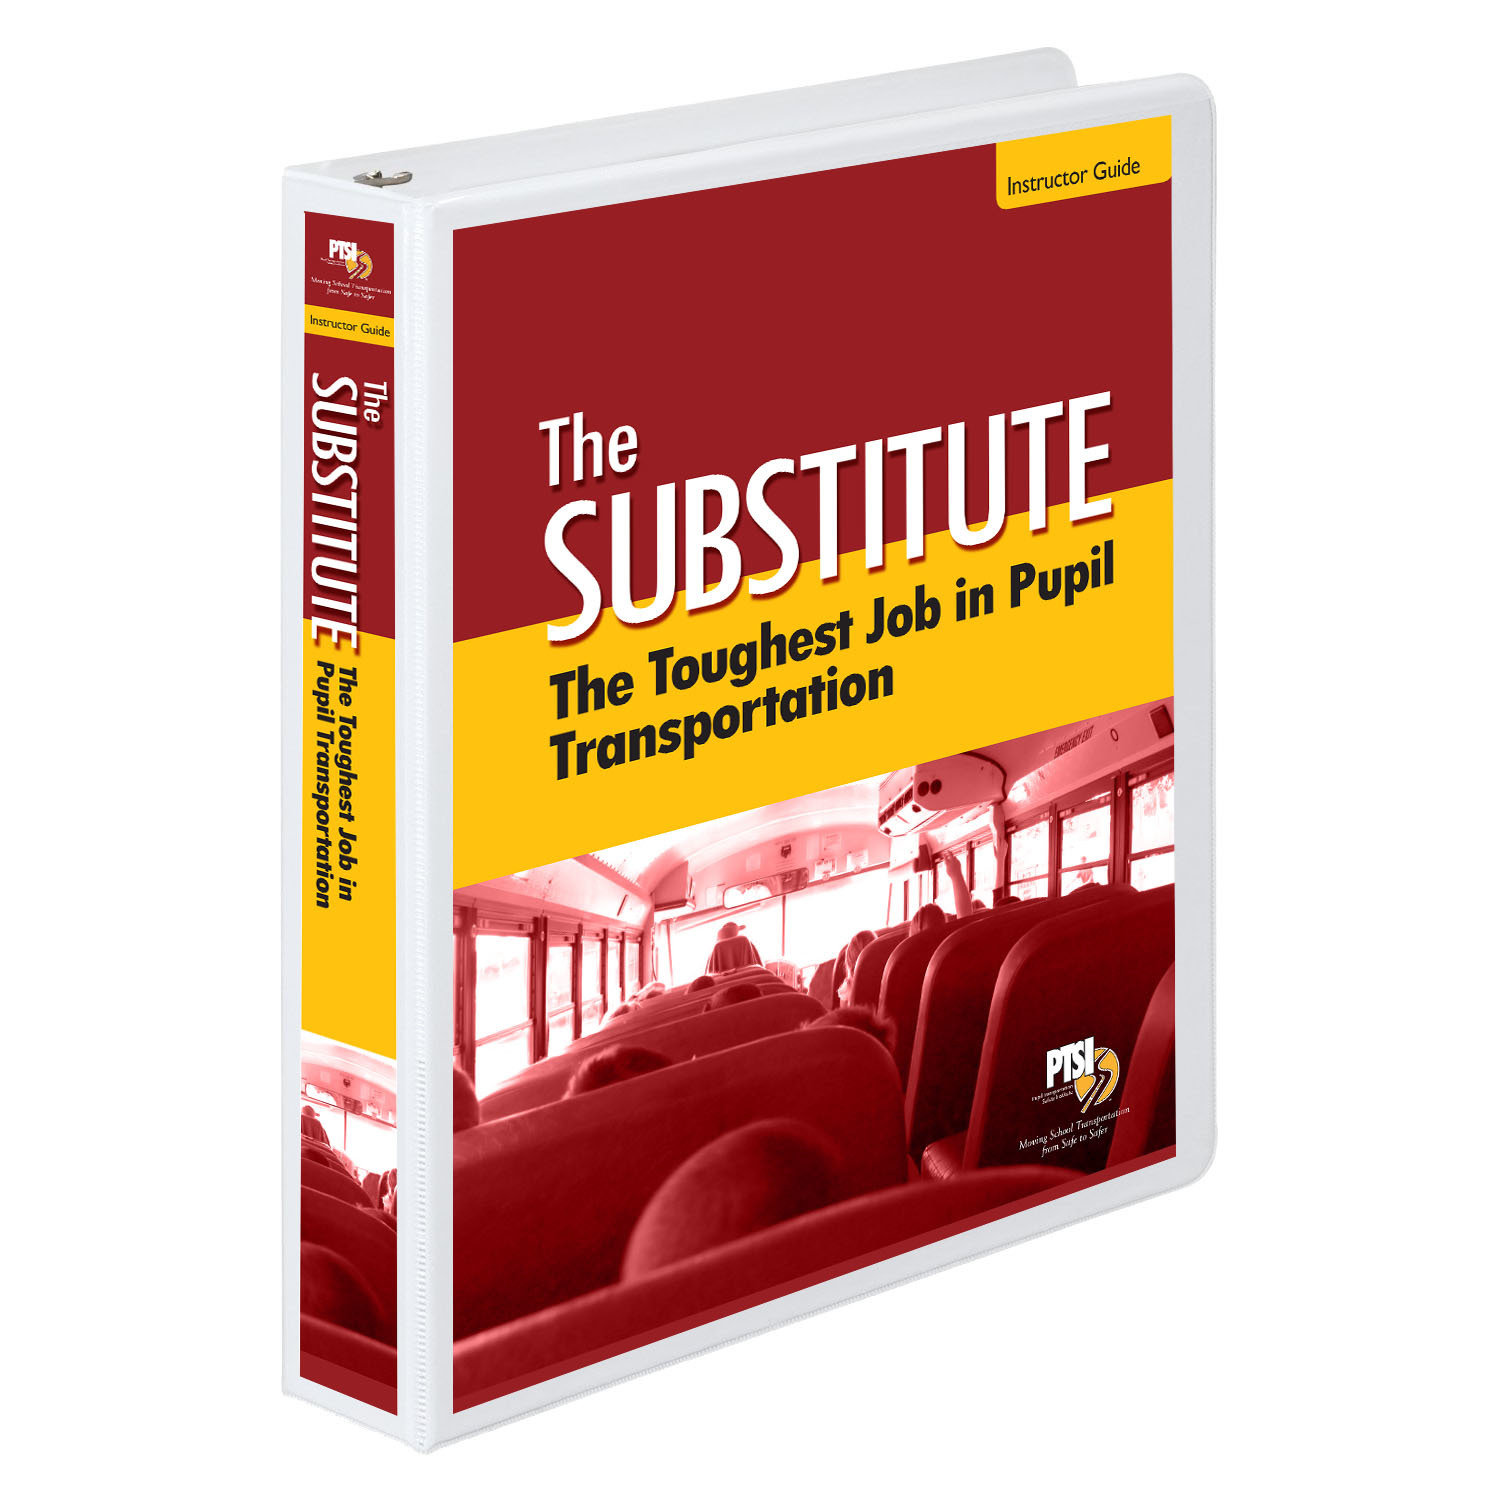 The Substitute: The Toughest Job in Pupil Transportation Training Curriculum